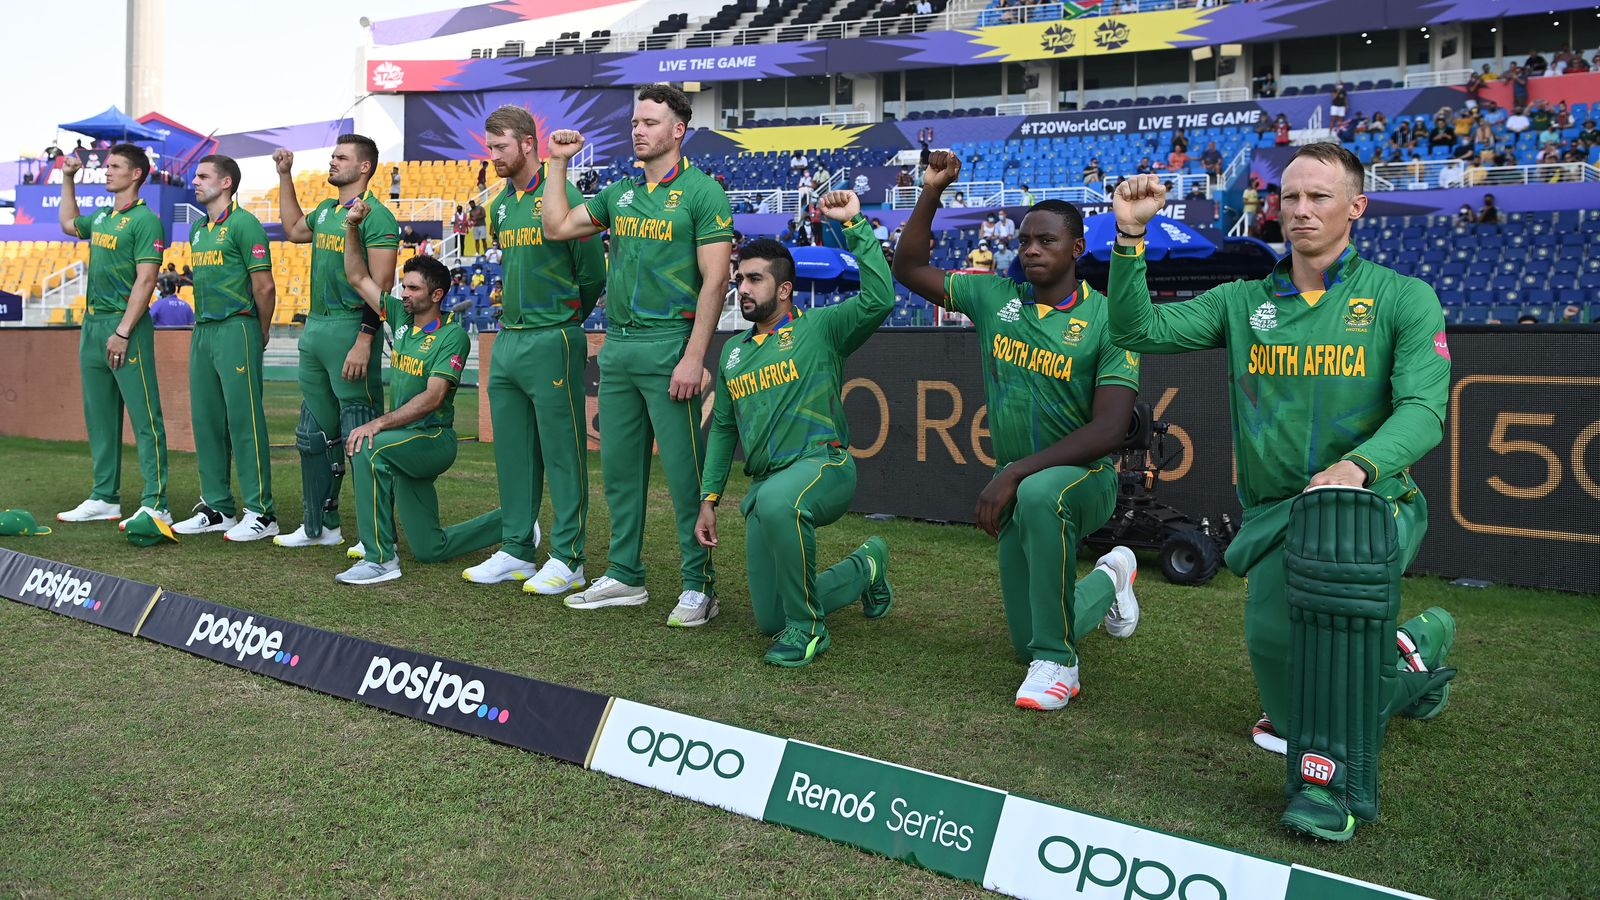 Cricket South Africa board instructs Proteas players to take a knee before T20 World Cup matches - Sky Sports